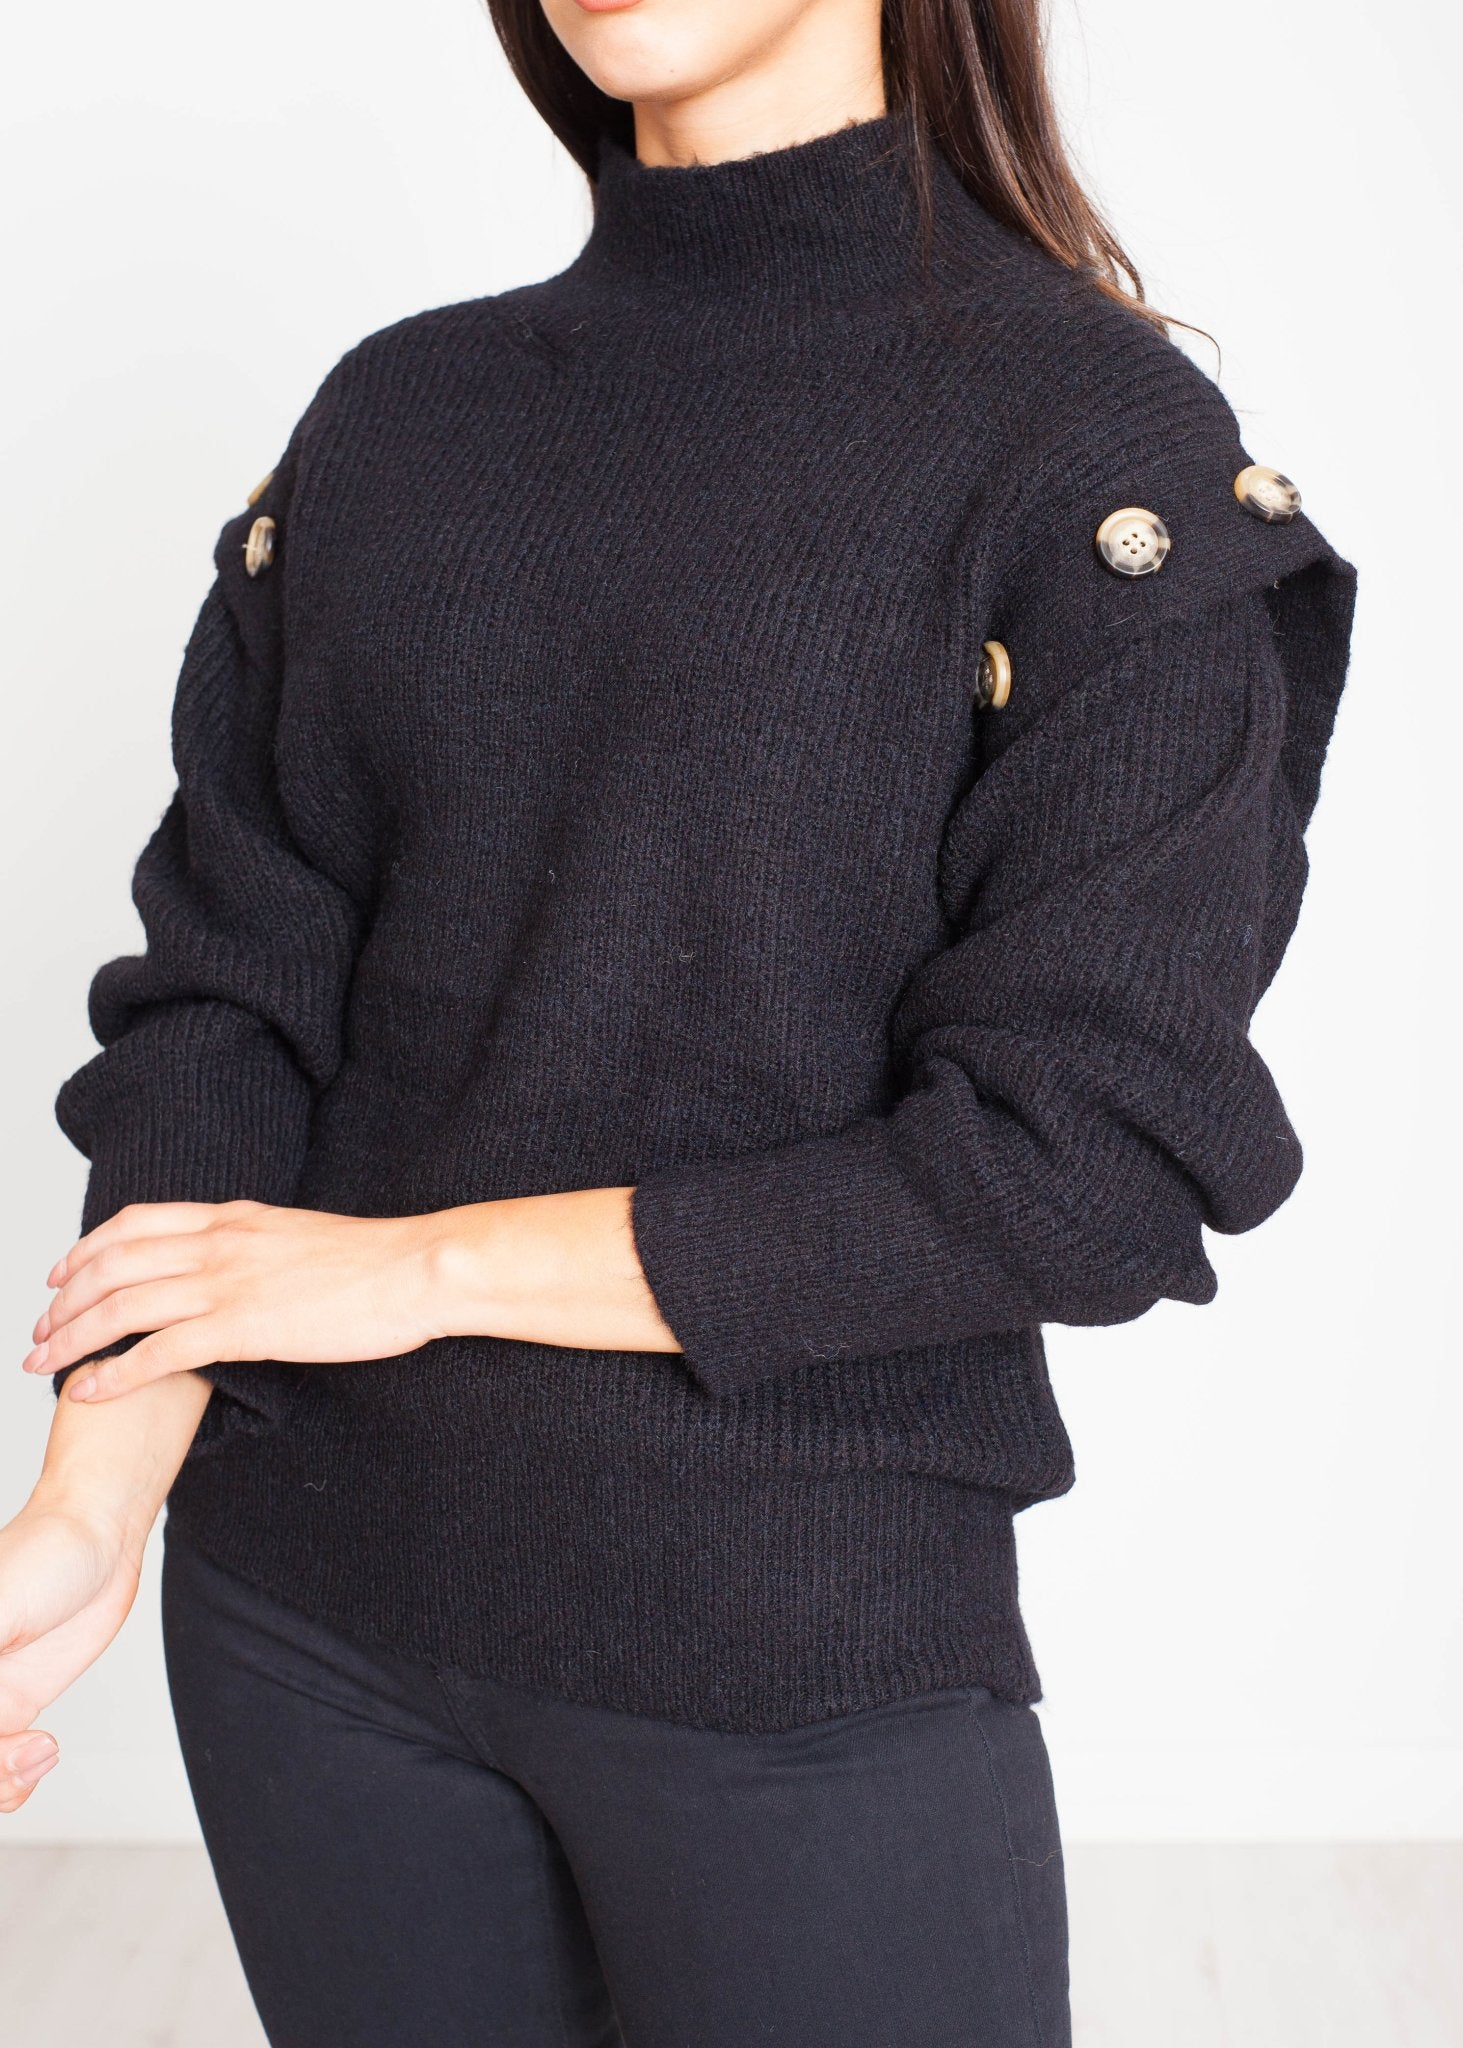 Priya Jumper With Buttons In Black - The Walk in Wardrobe